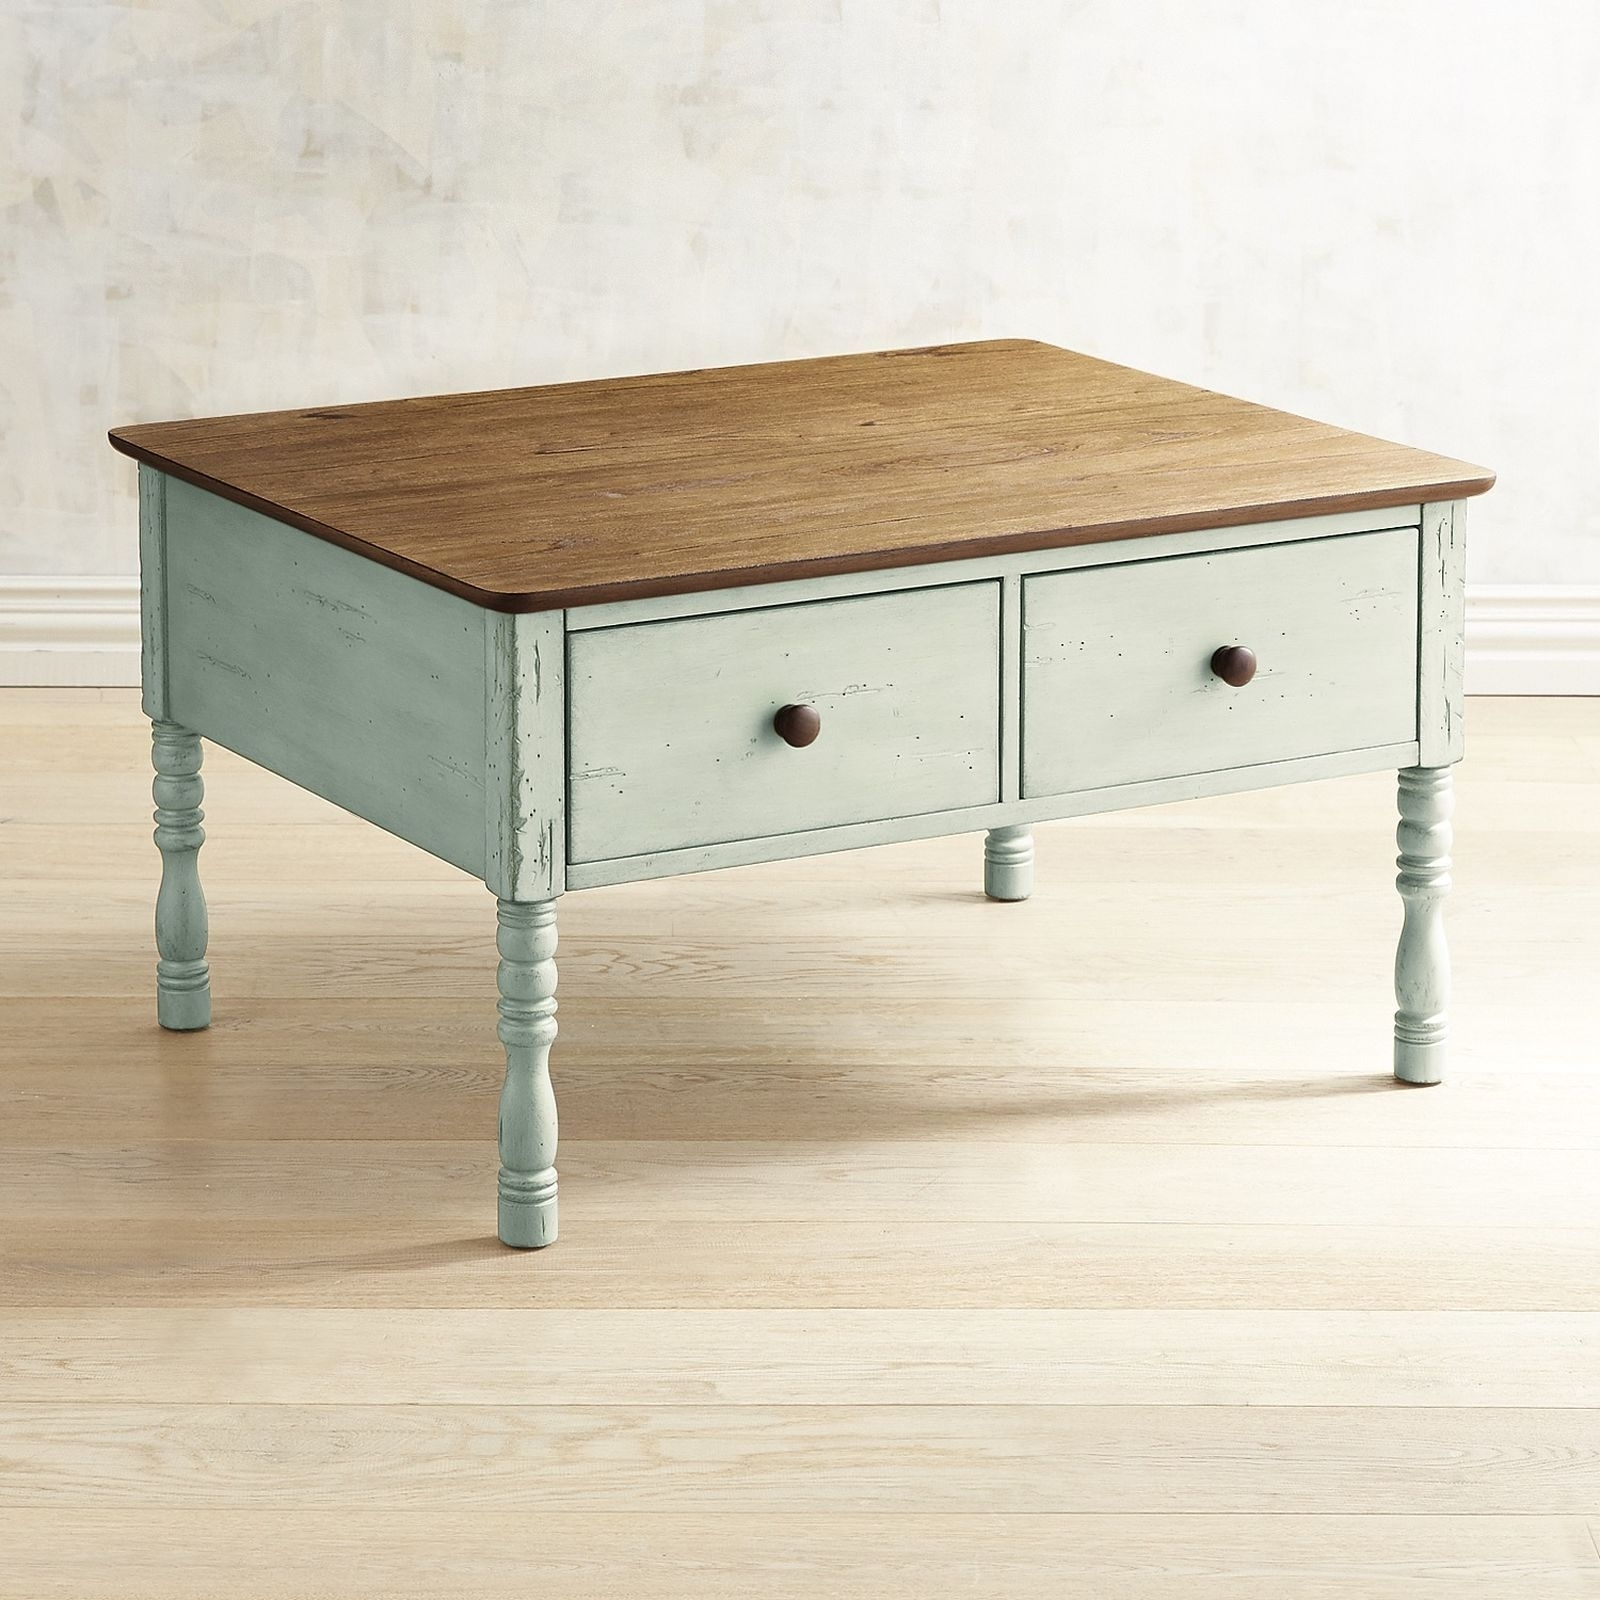 Pier 1 Imports Haven Soft Green Coffee Table | Green Coffee Tables Pertaining To Haven Coffee Tables (Photo 10 of 30)